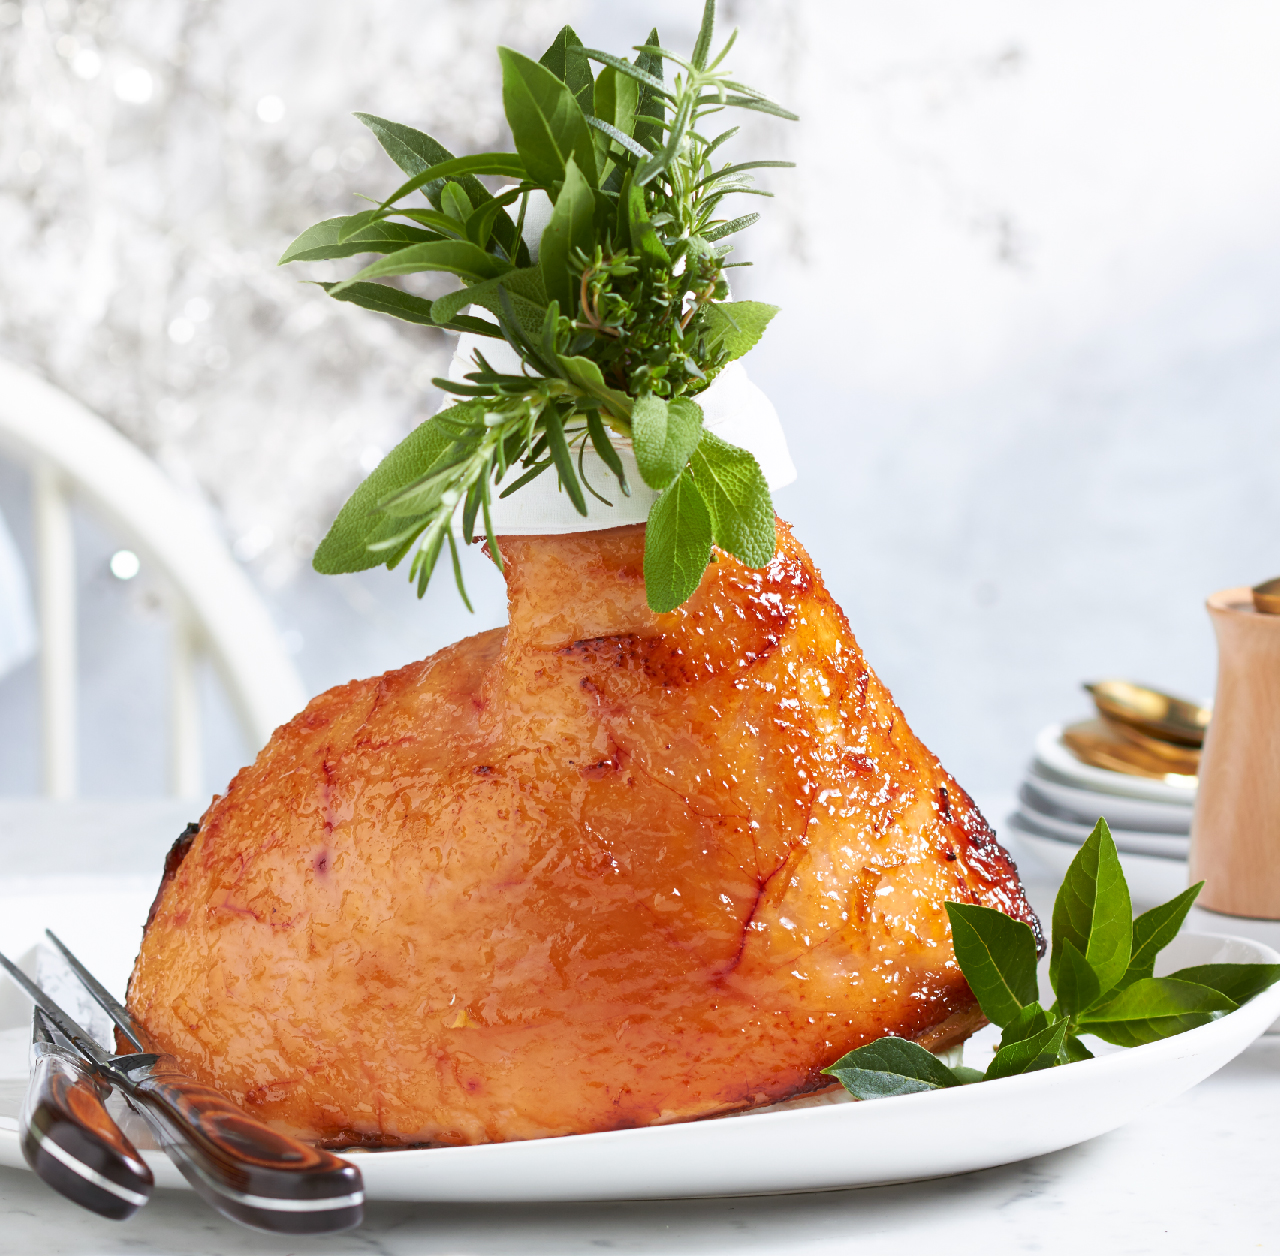 Lime and ginger glazed ham recipe